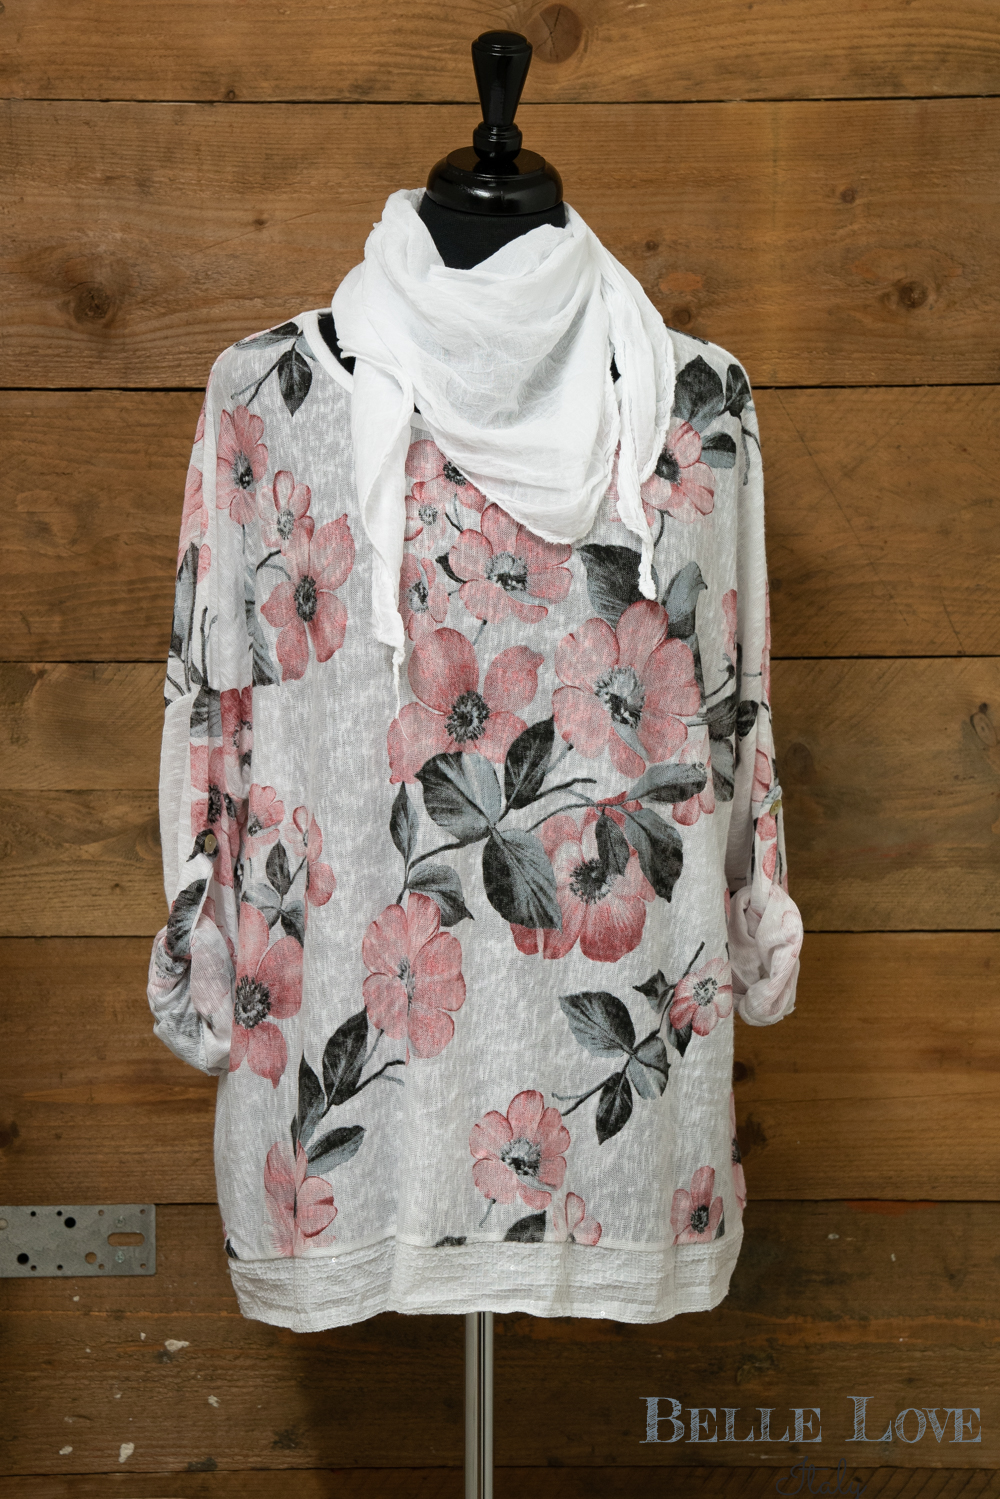 Belle Love Italy Large Floral Print Two Piece